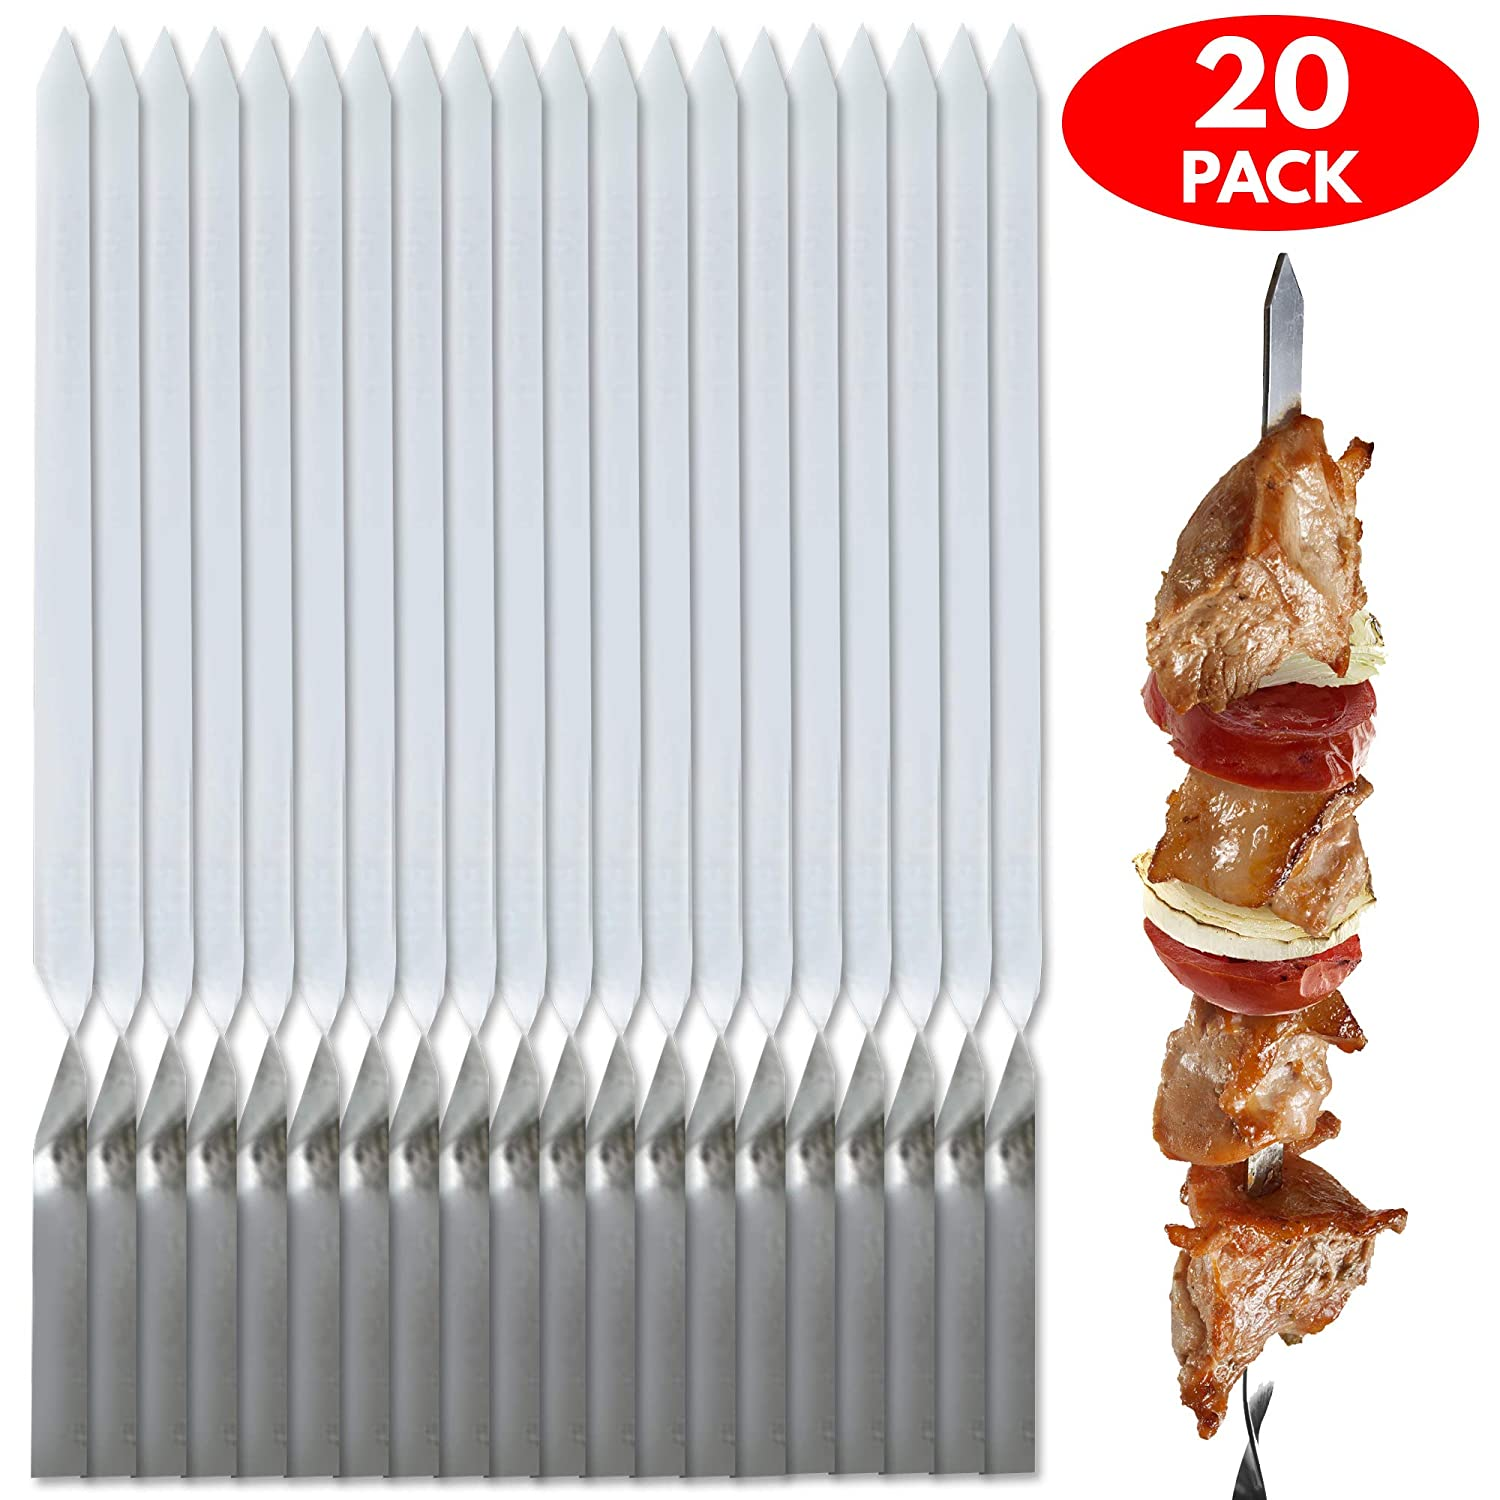 BRAMBLE! 20 Skewers, Stainless Steel Metal Kebab Sticks - Perfect for BBQ's and Grilling - Includes Handy Storage Poly Bag